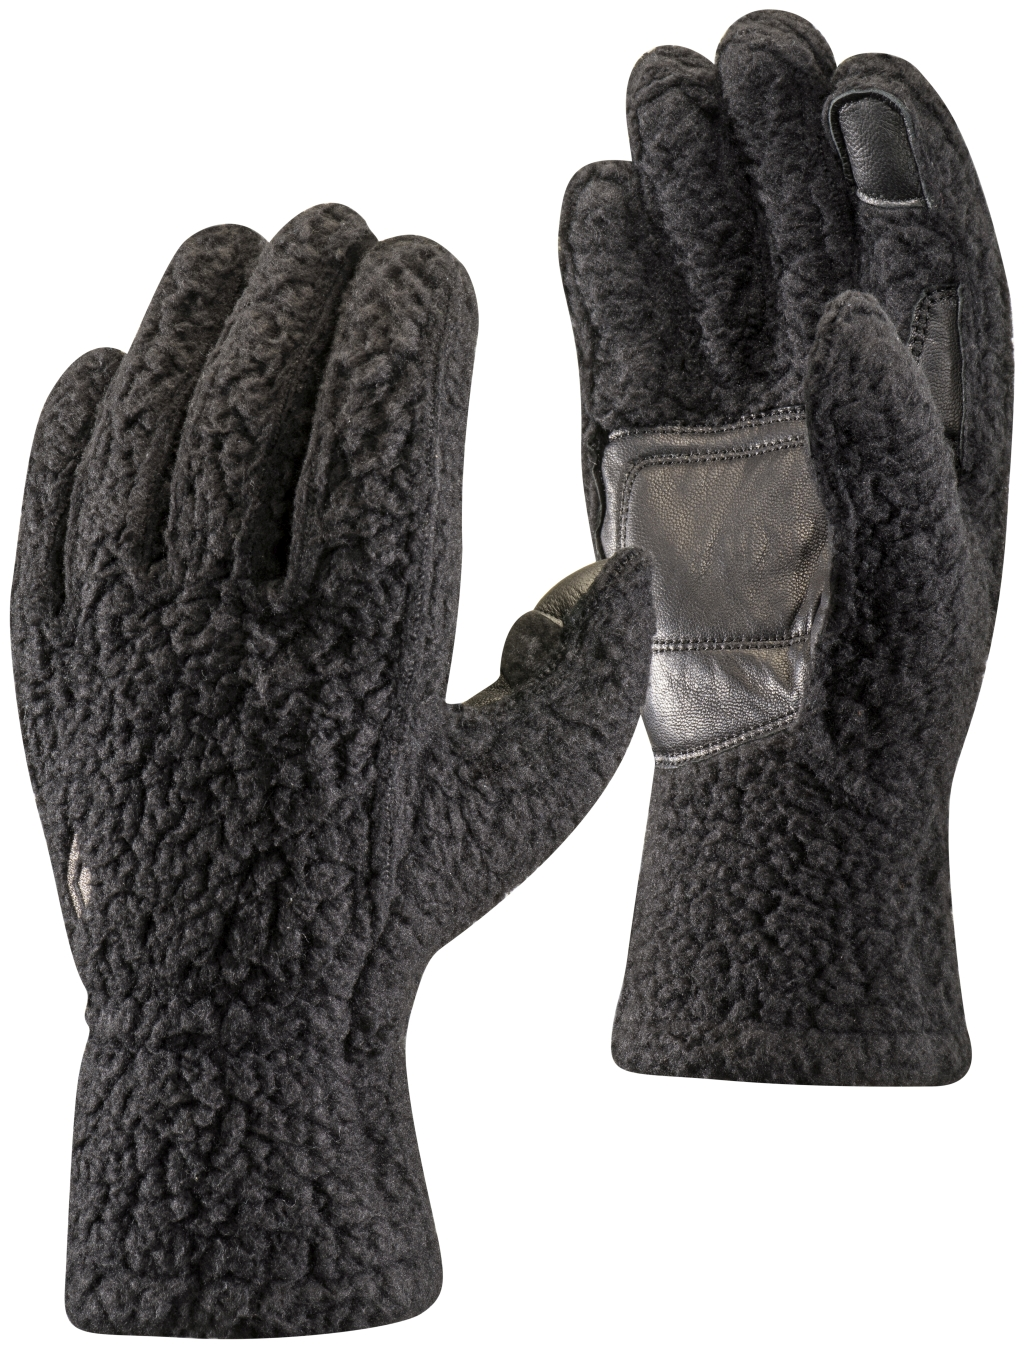 Black Diamond Yetiweight Fleece Gloves Black-30